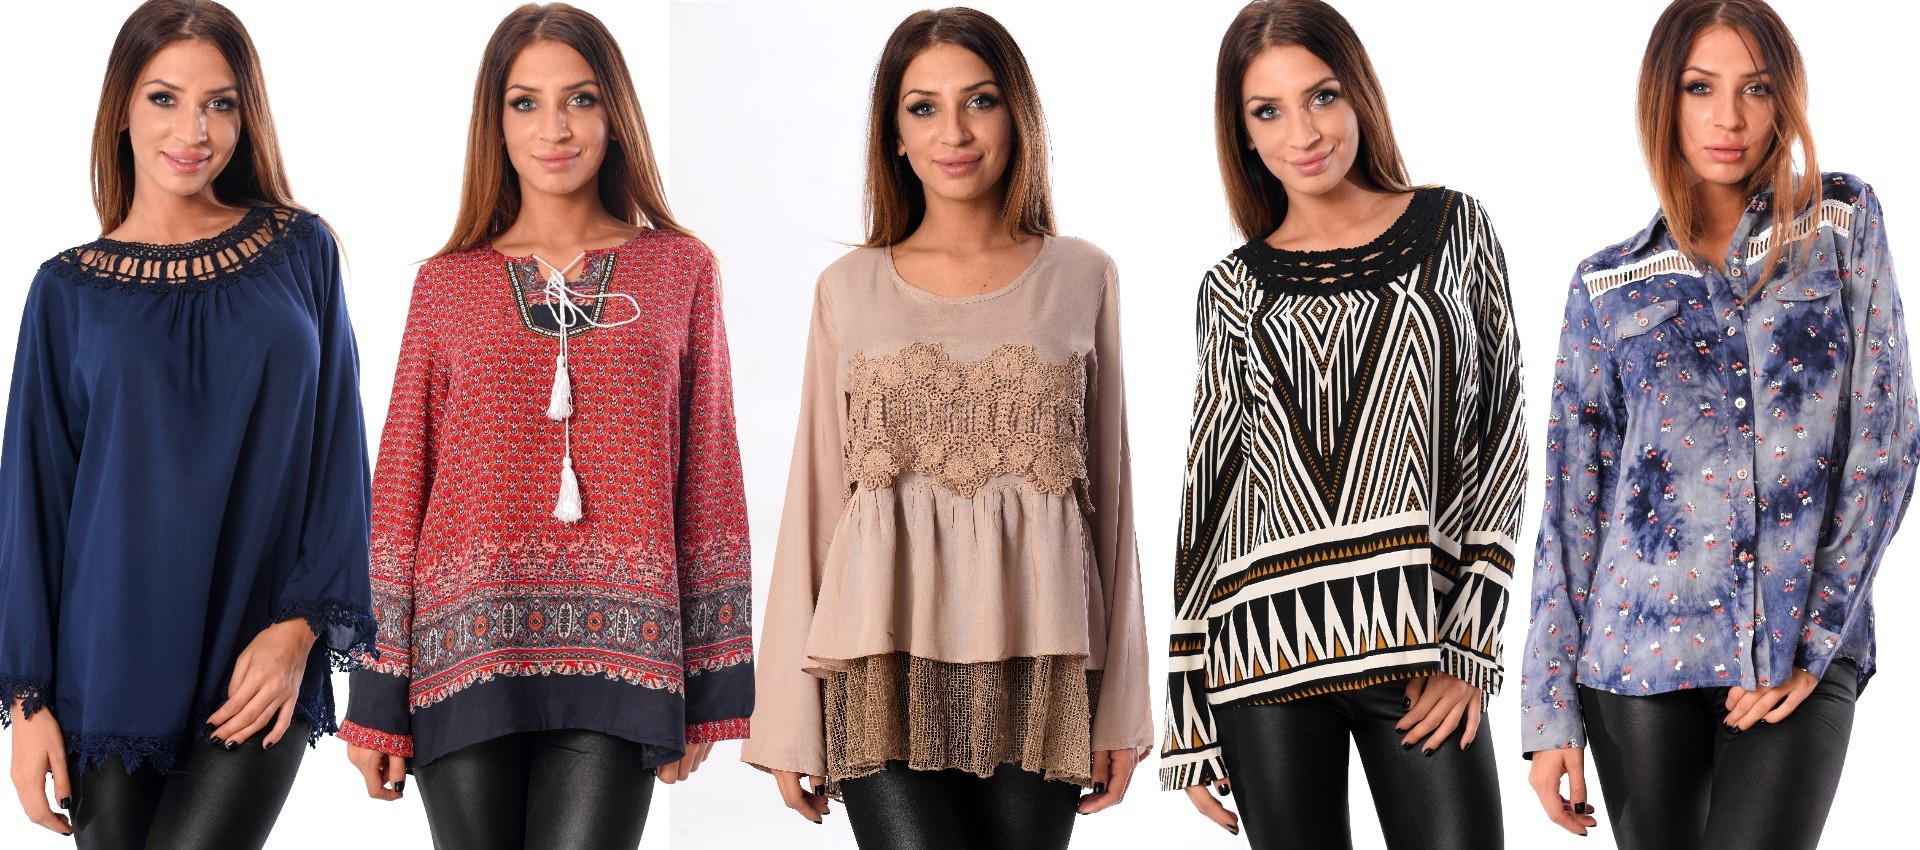 Grossiste pret a porter fashion wholesaler women clothes and accessories from france